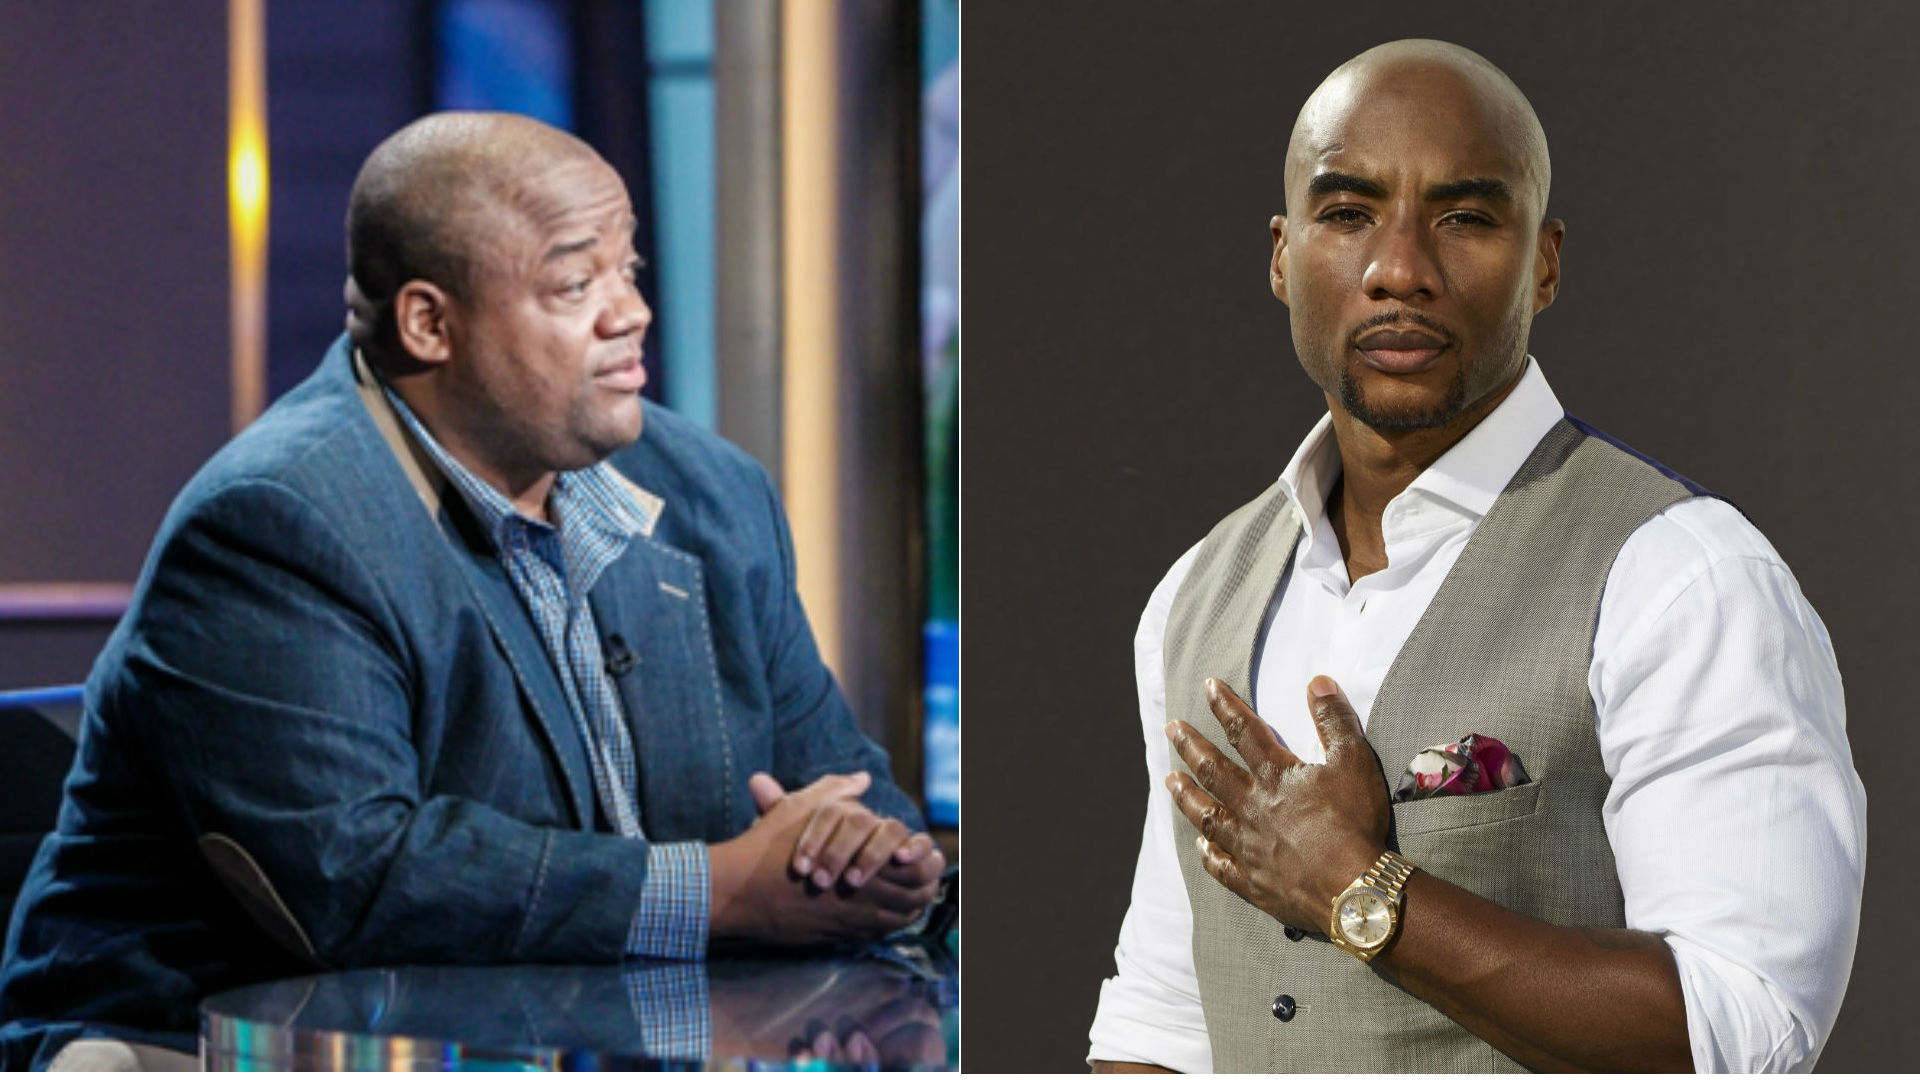 Charlamagne Tha God says he is done with FS1's 'clown' Jason Whitlock